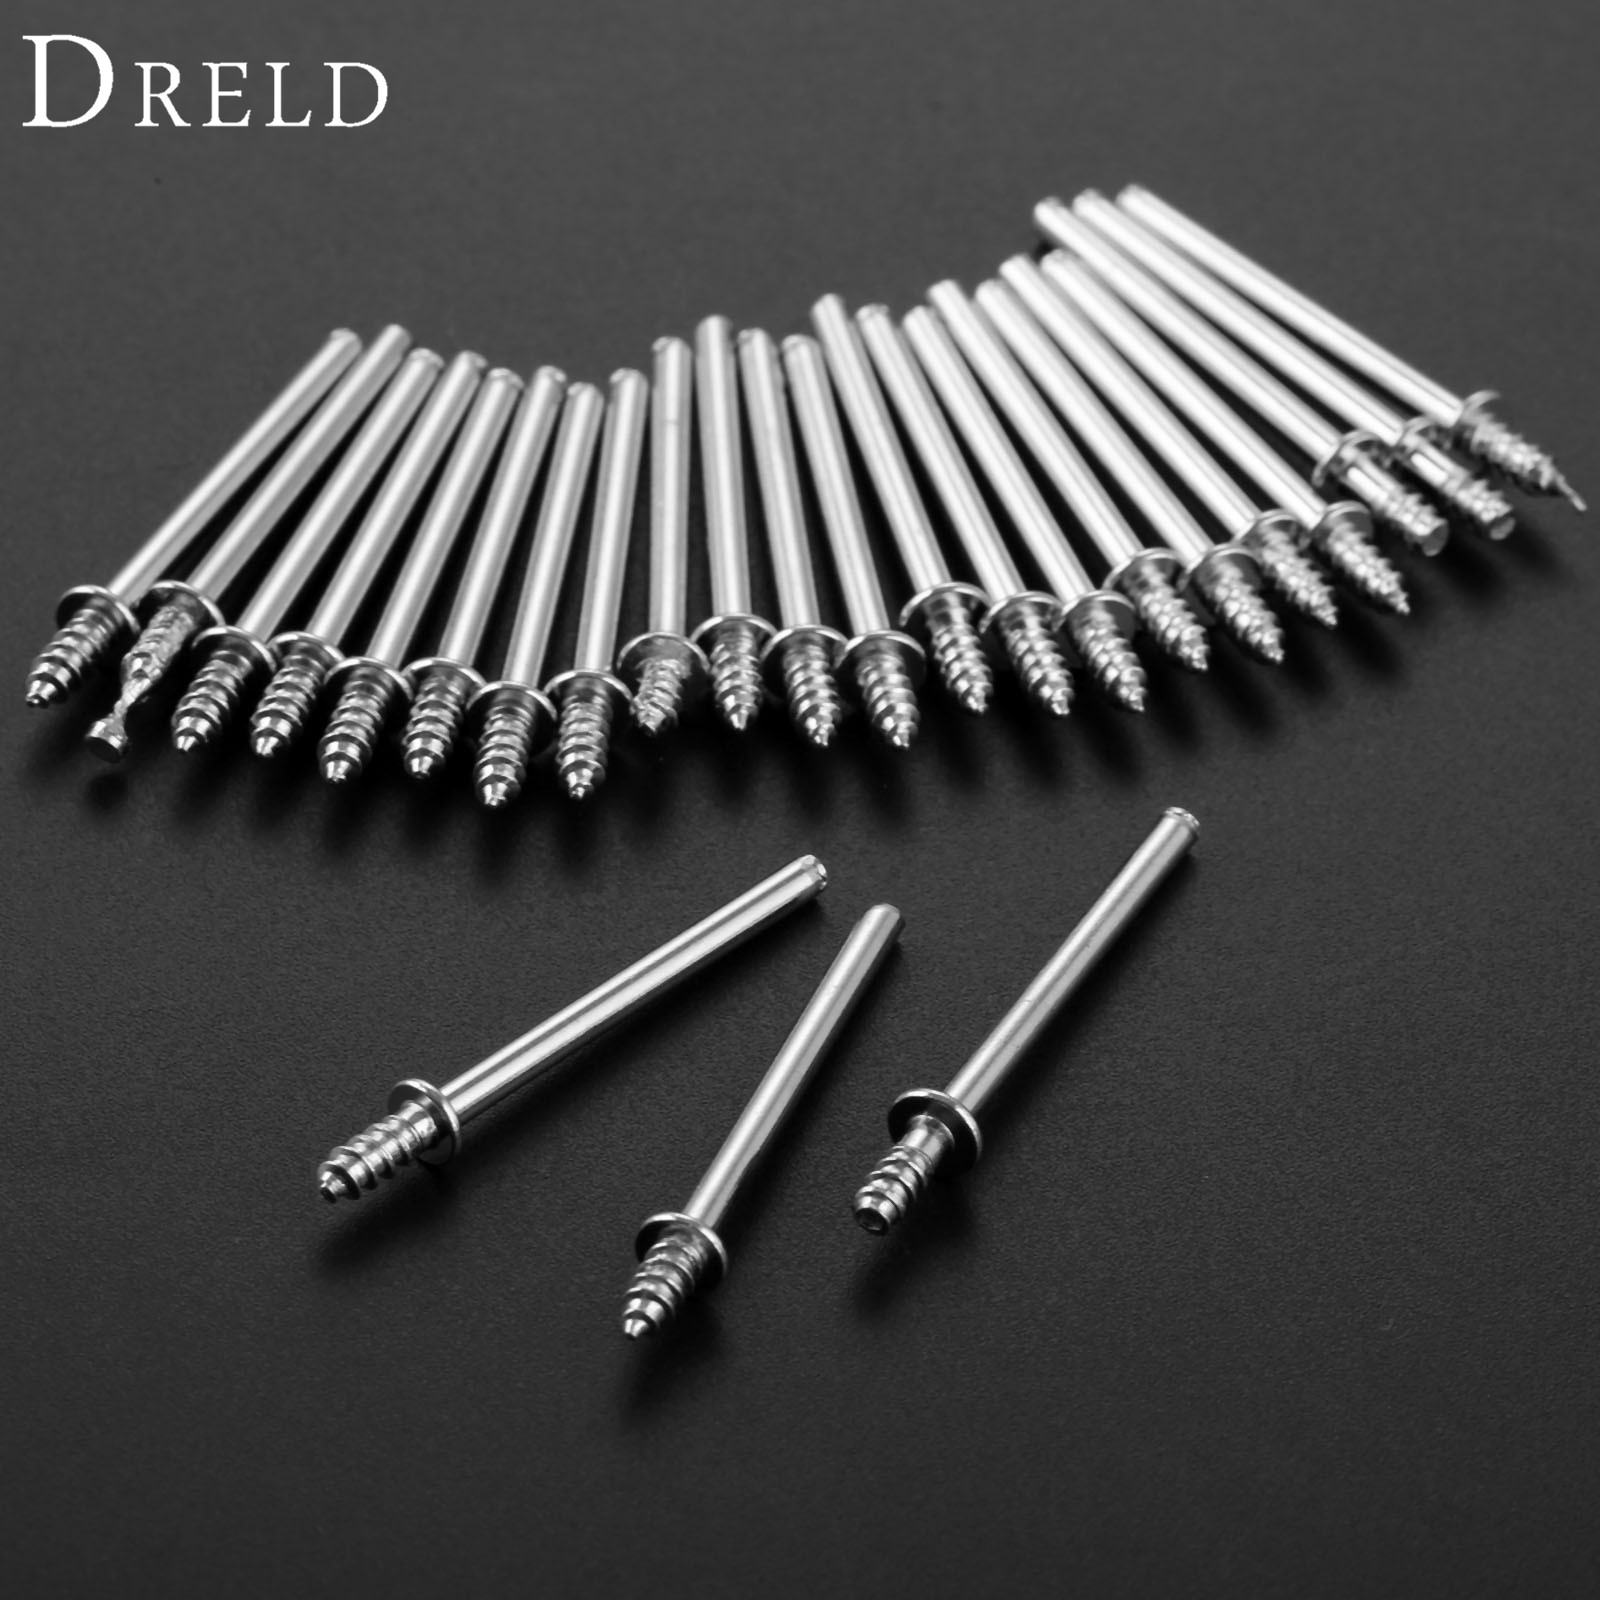 DRELD 25Pcs Dremel Accessories 2.35mm Shank Polishing Wheel Mandrels Cutting Cut-off Wheel Holder For Rotary Tools Connection